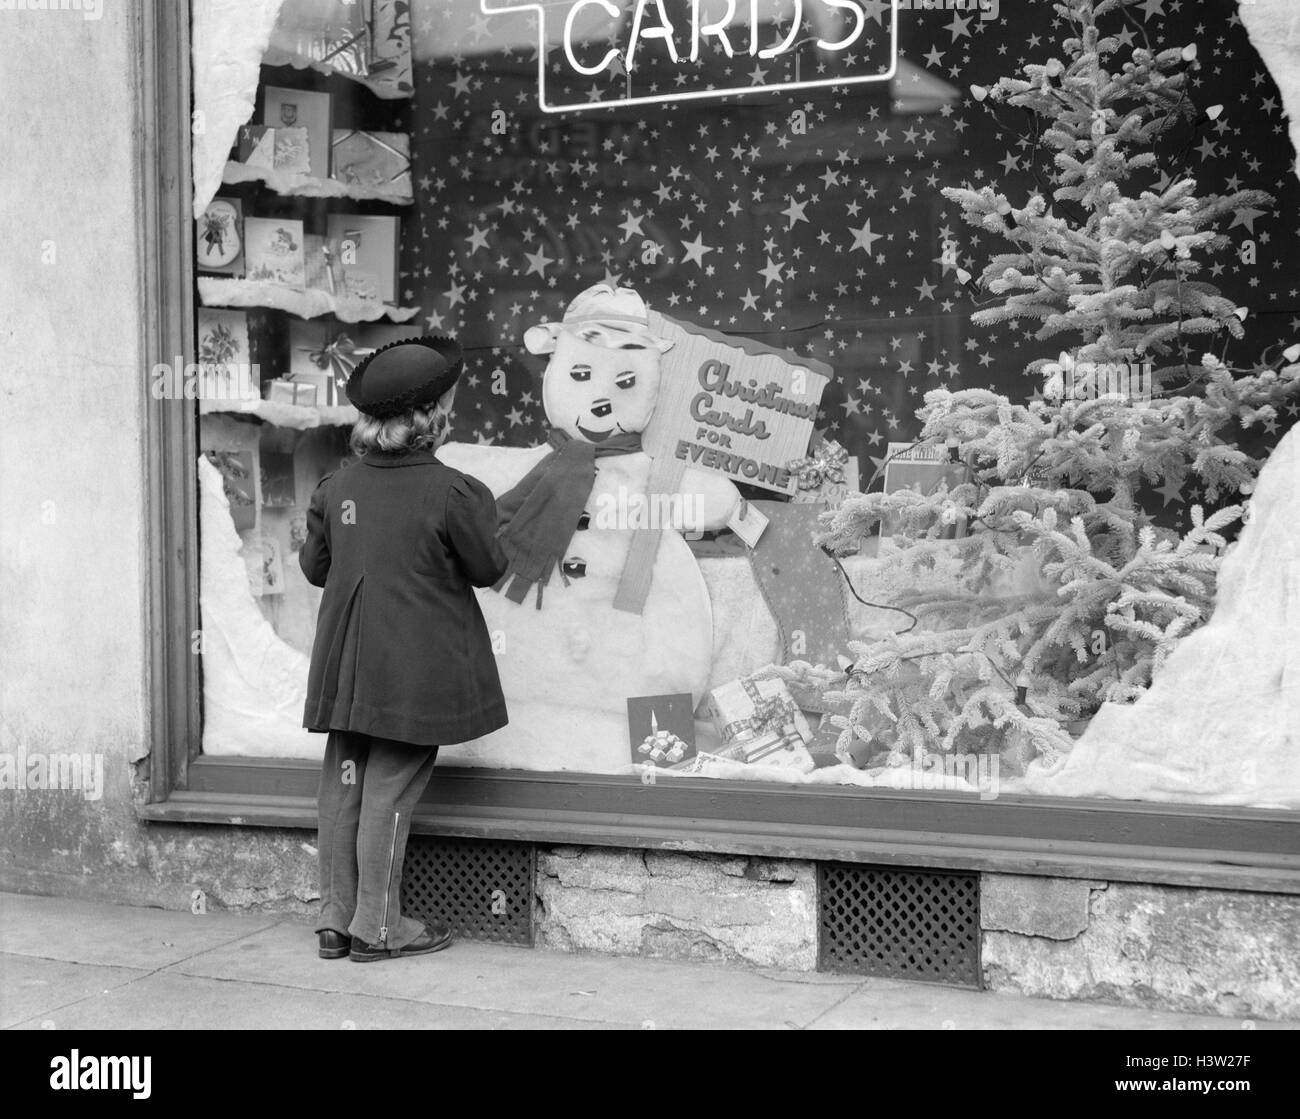 1930s 1940s LITTLE GIRL LOOK INTO CARD SHOP WINDOW WITH CHRISTMAS DECORATIONS AND SNOWMAN DISPLAY Stock Photo